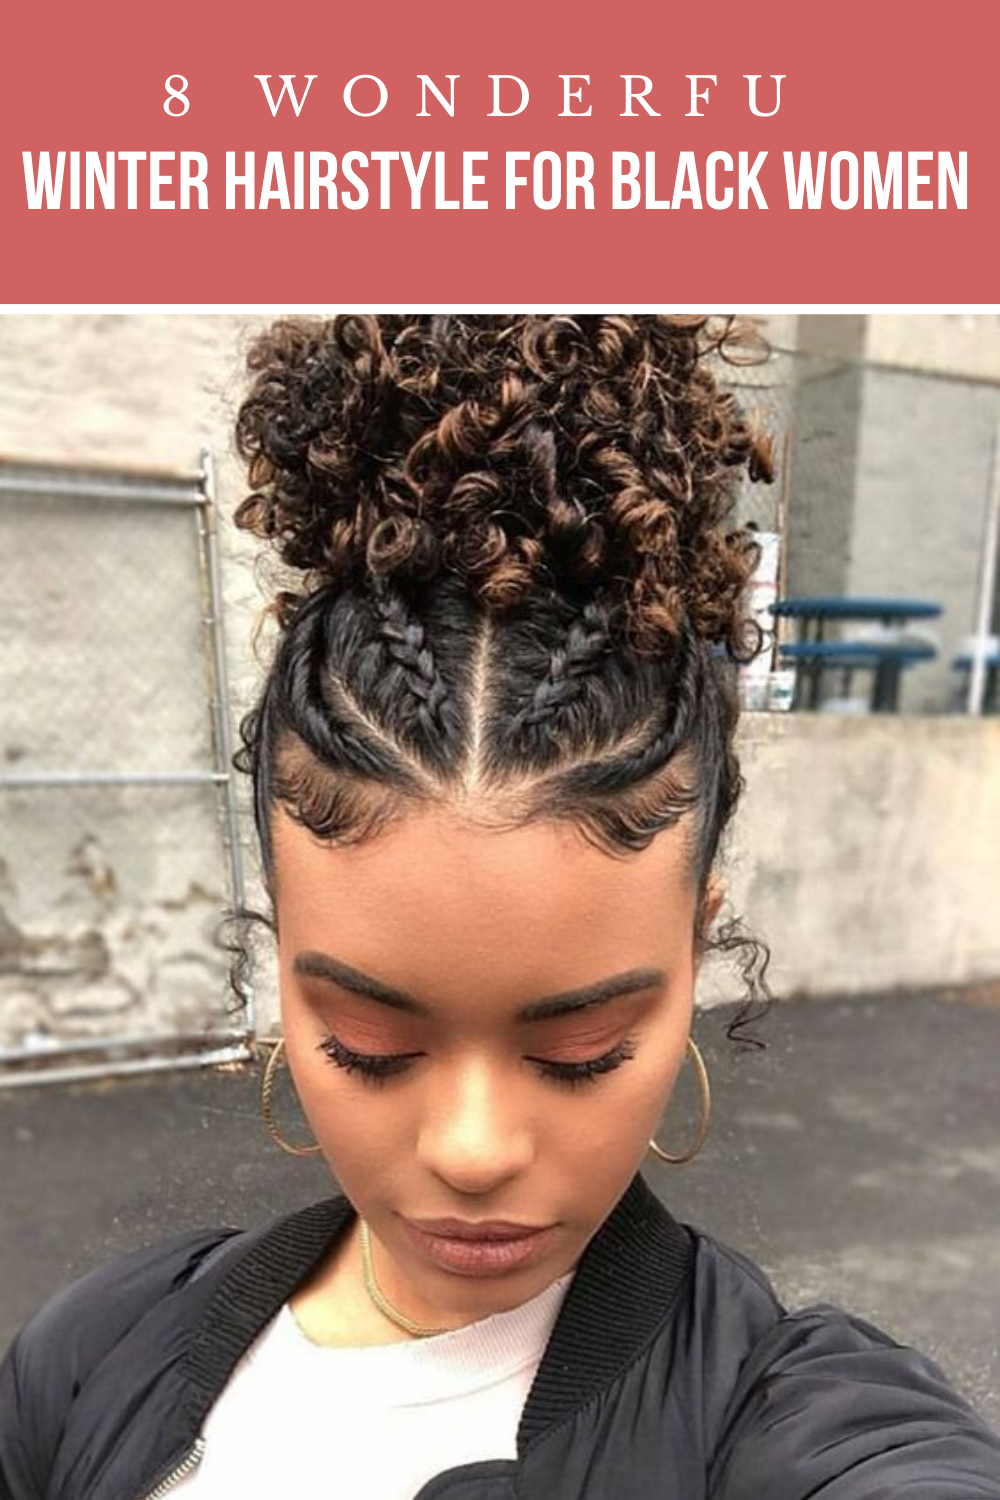 8 Wonderful Winter Hairstyle For Black Women 2020 Have A Look In 2020 Curly Hair Styles Naturally Curly Hair Styles Cute Curly Hairstyles